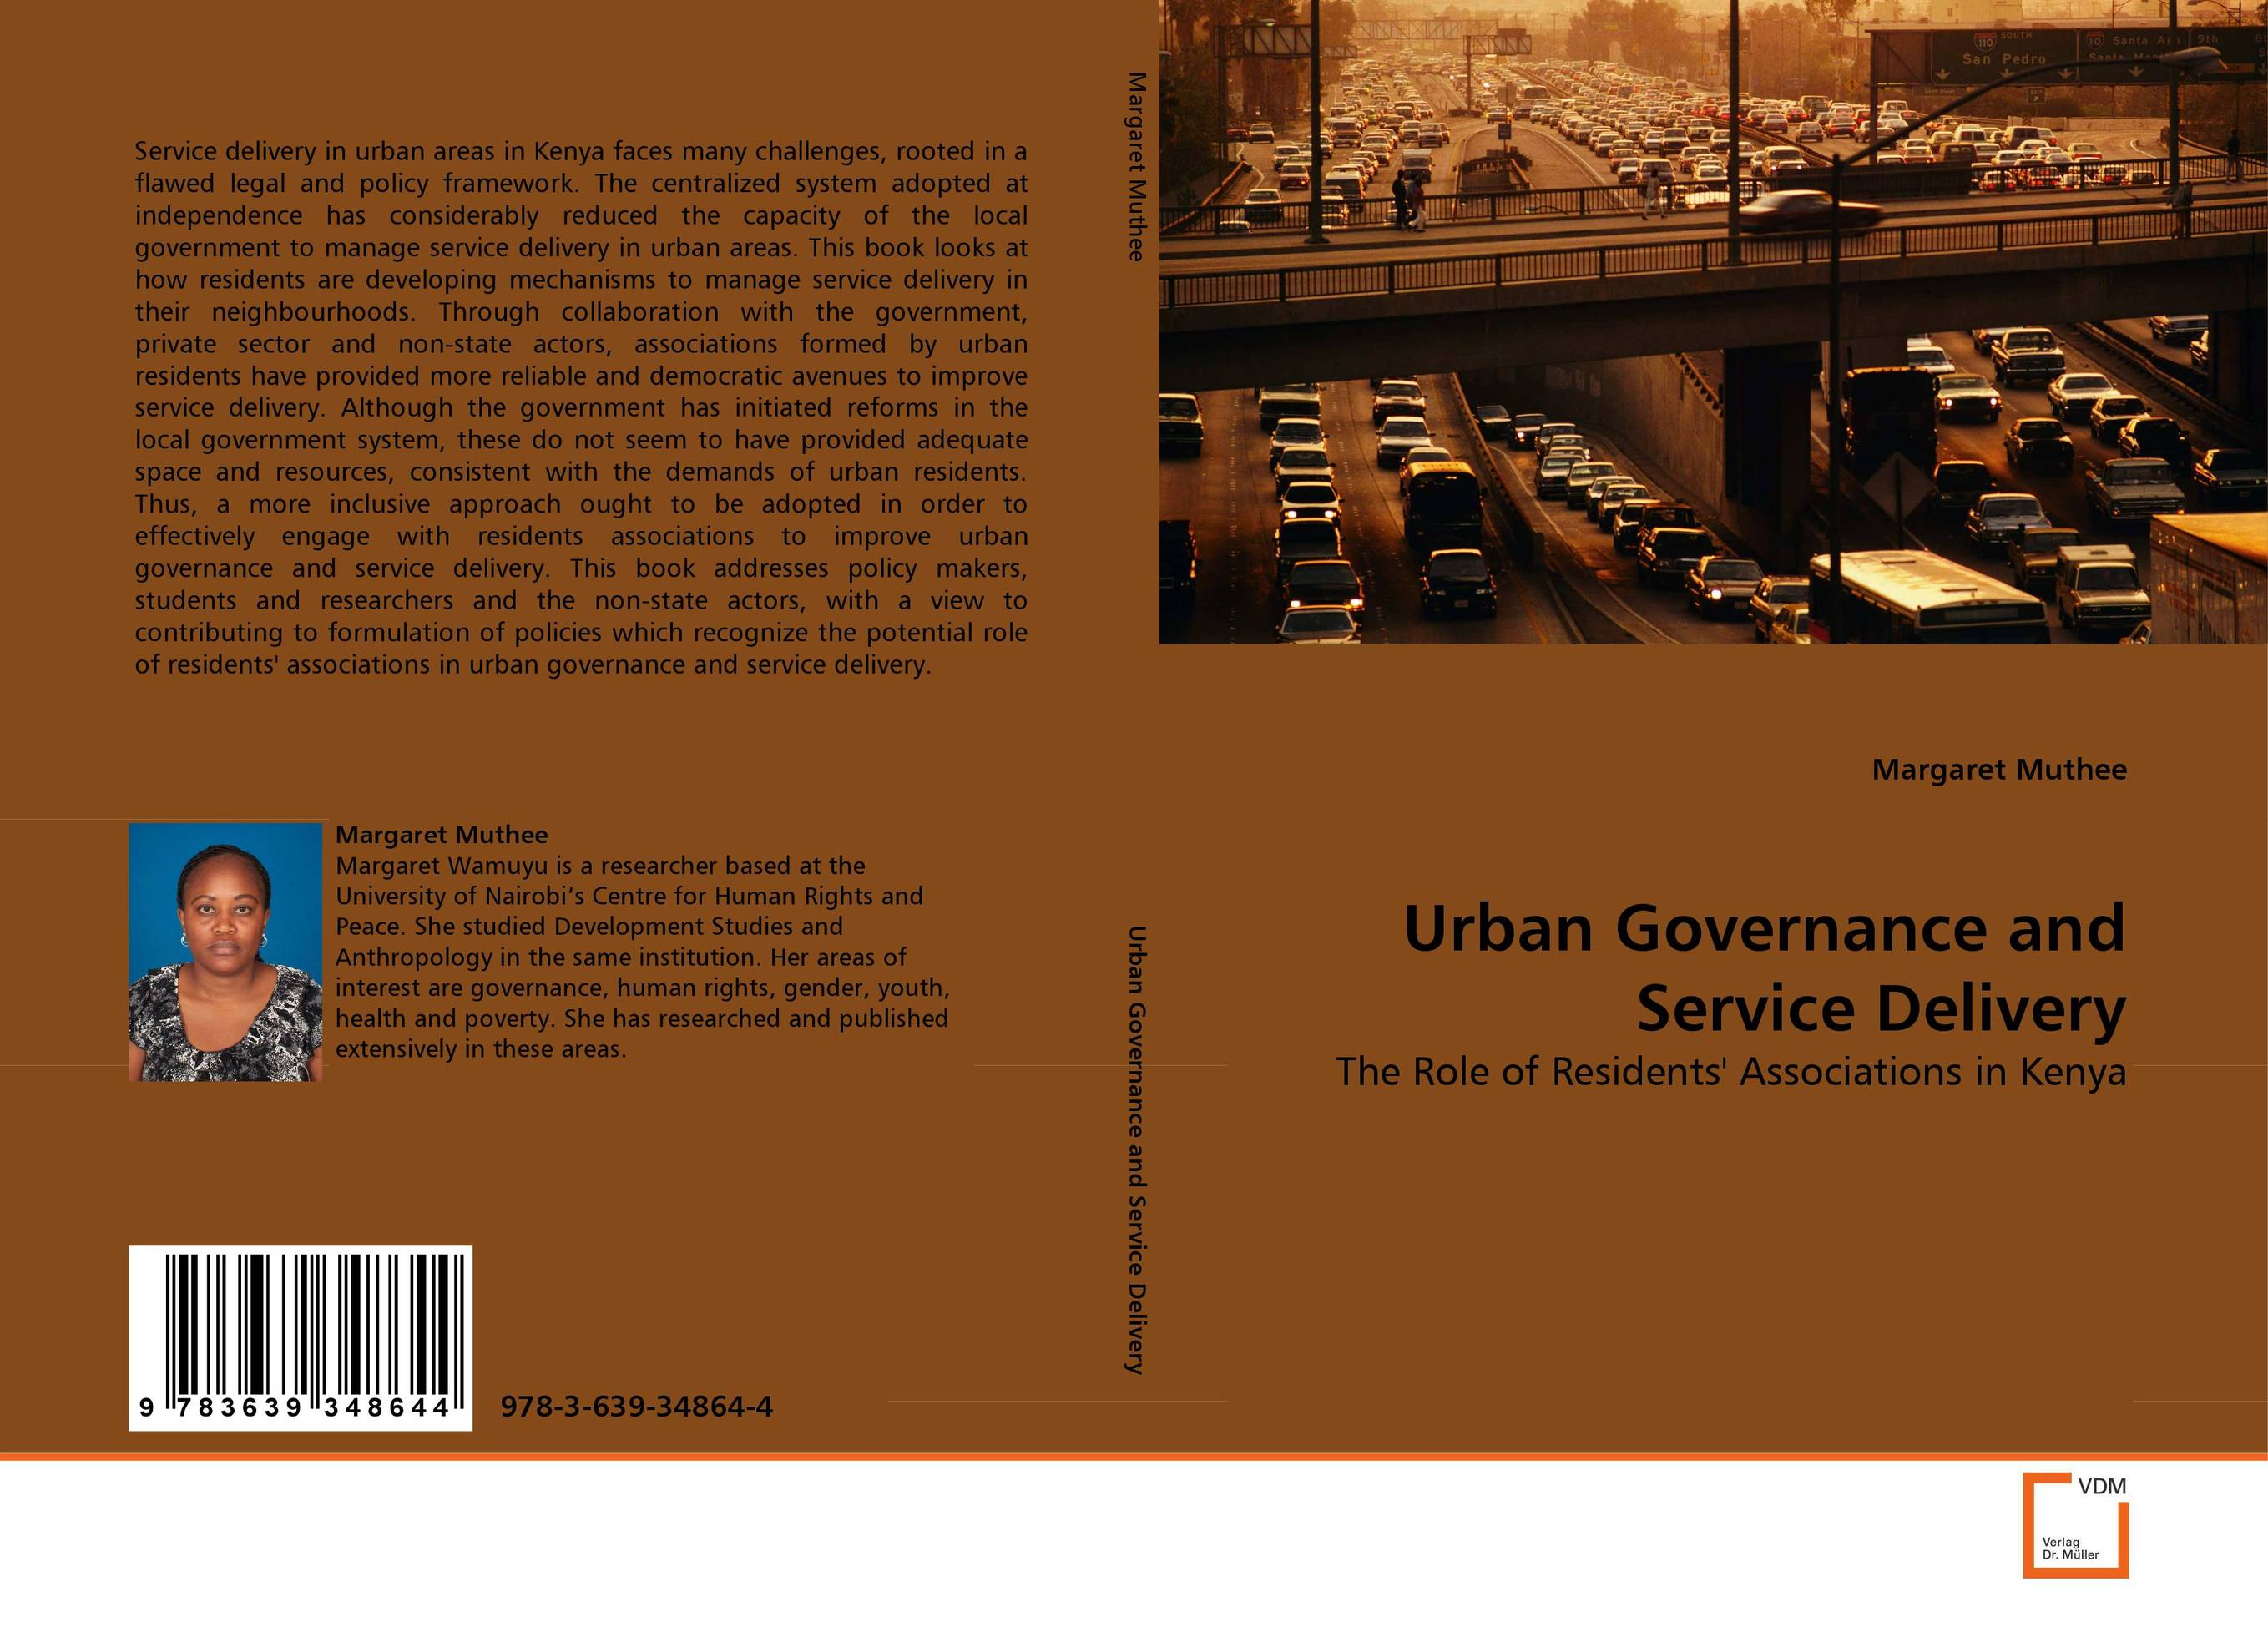 Urban Governance and Service Delivery